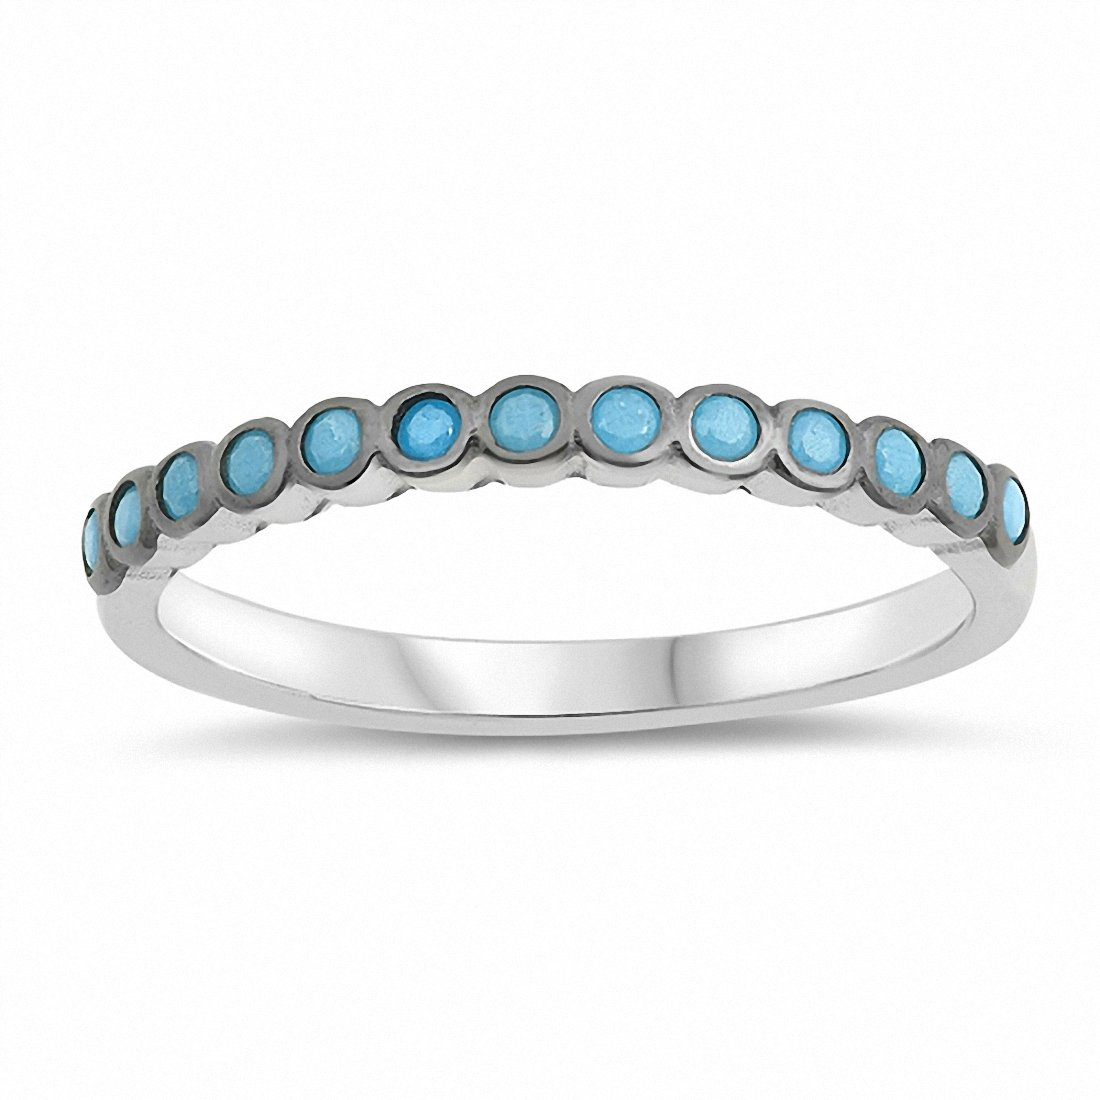 Bezel Eternity Style Round Simulated Nano Turquoise 925 Sterling Silver Choose Color